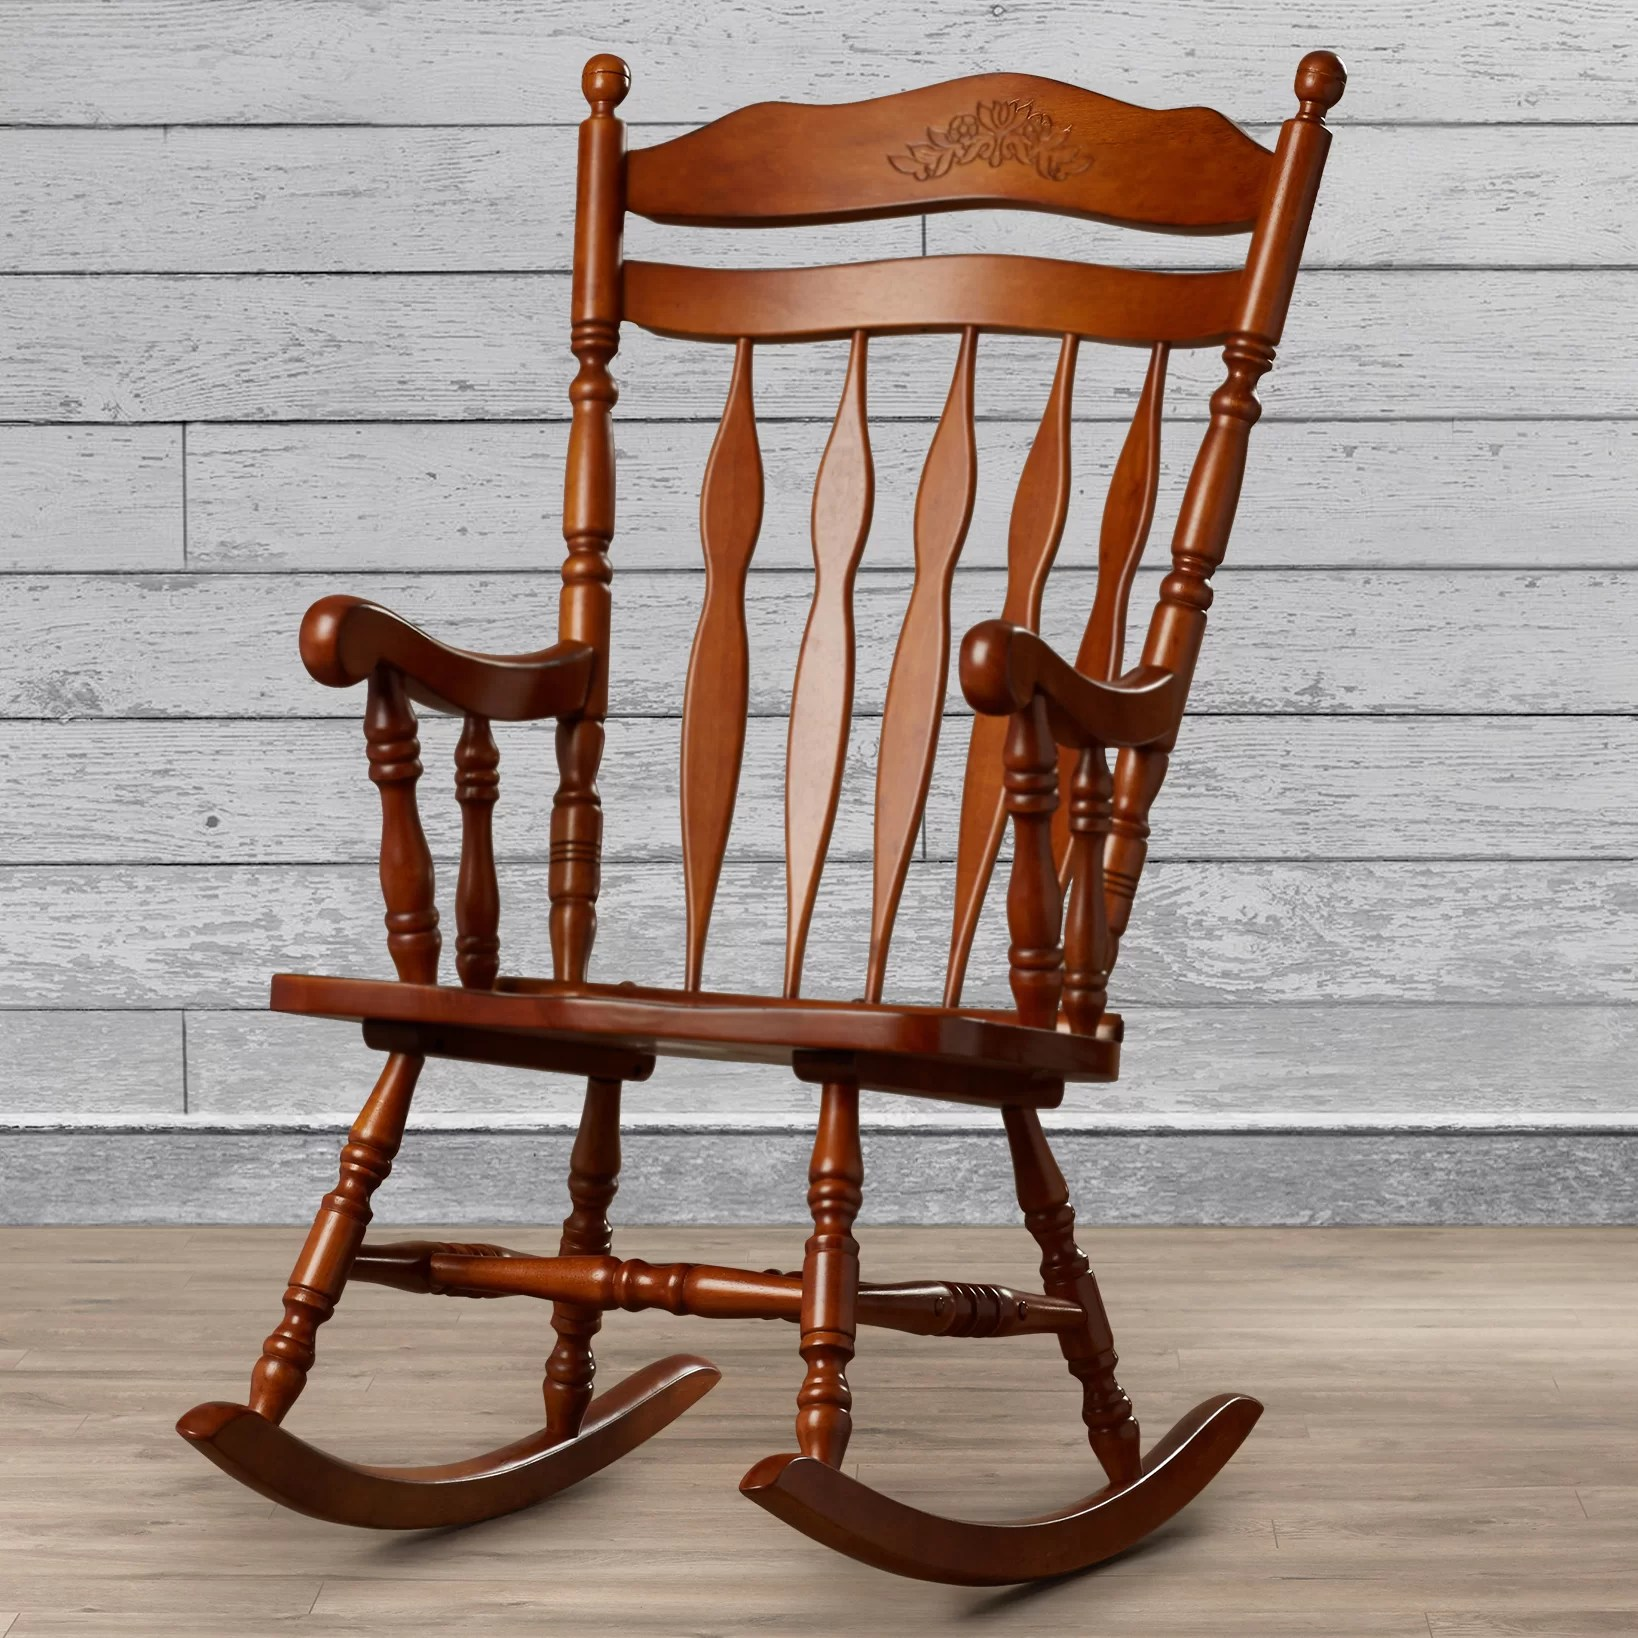 Cheap Rocking Chairs Greenwood Rocking Chair